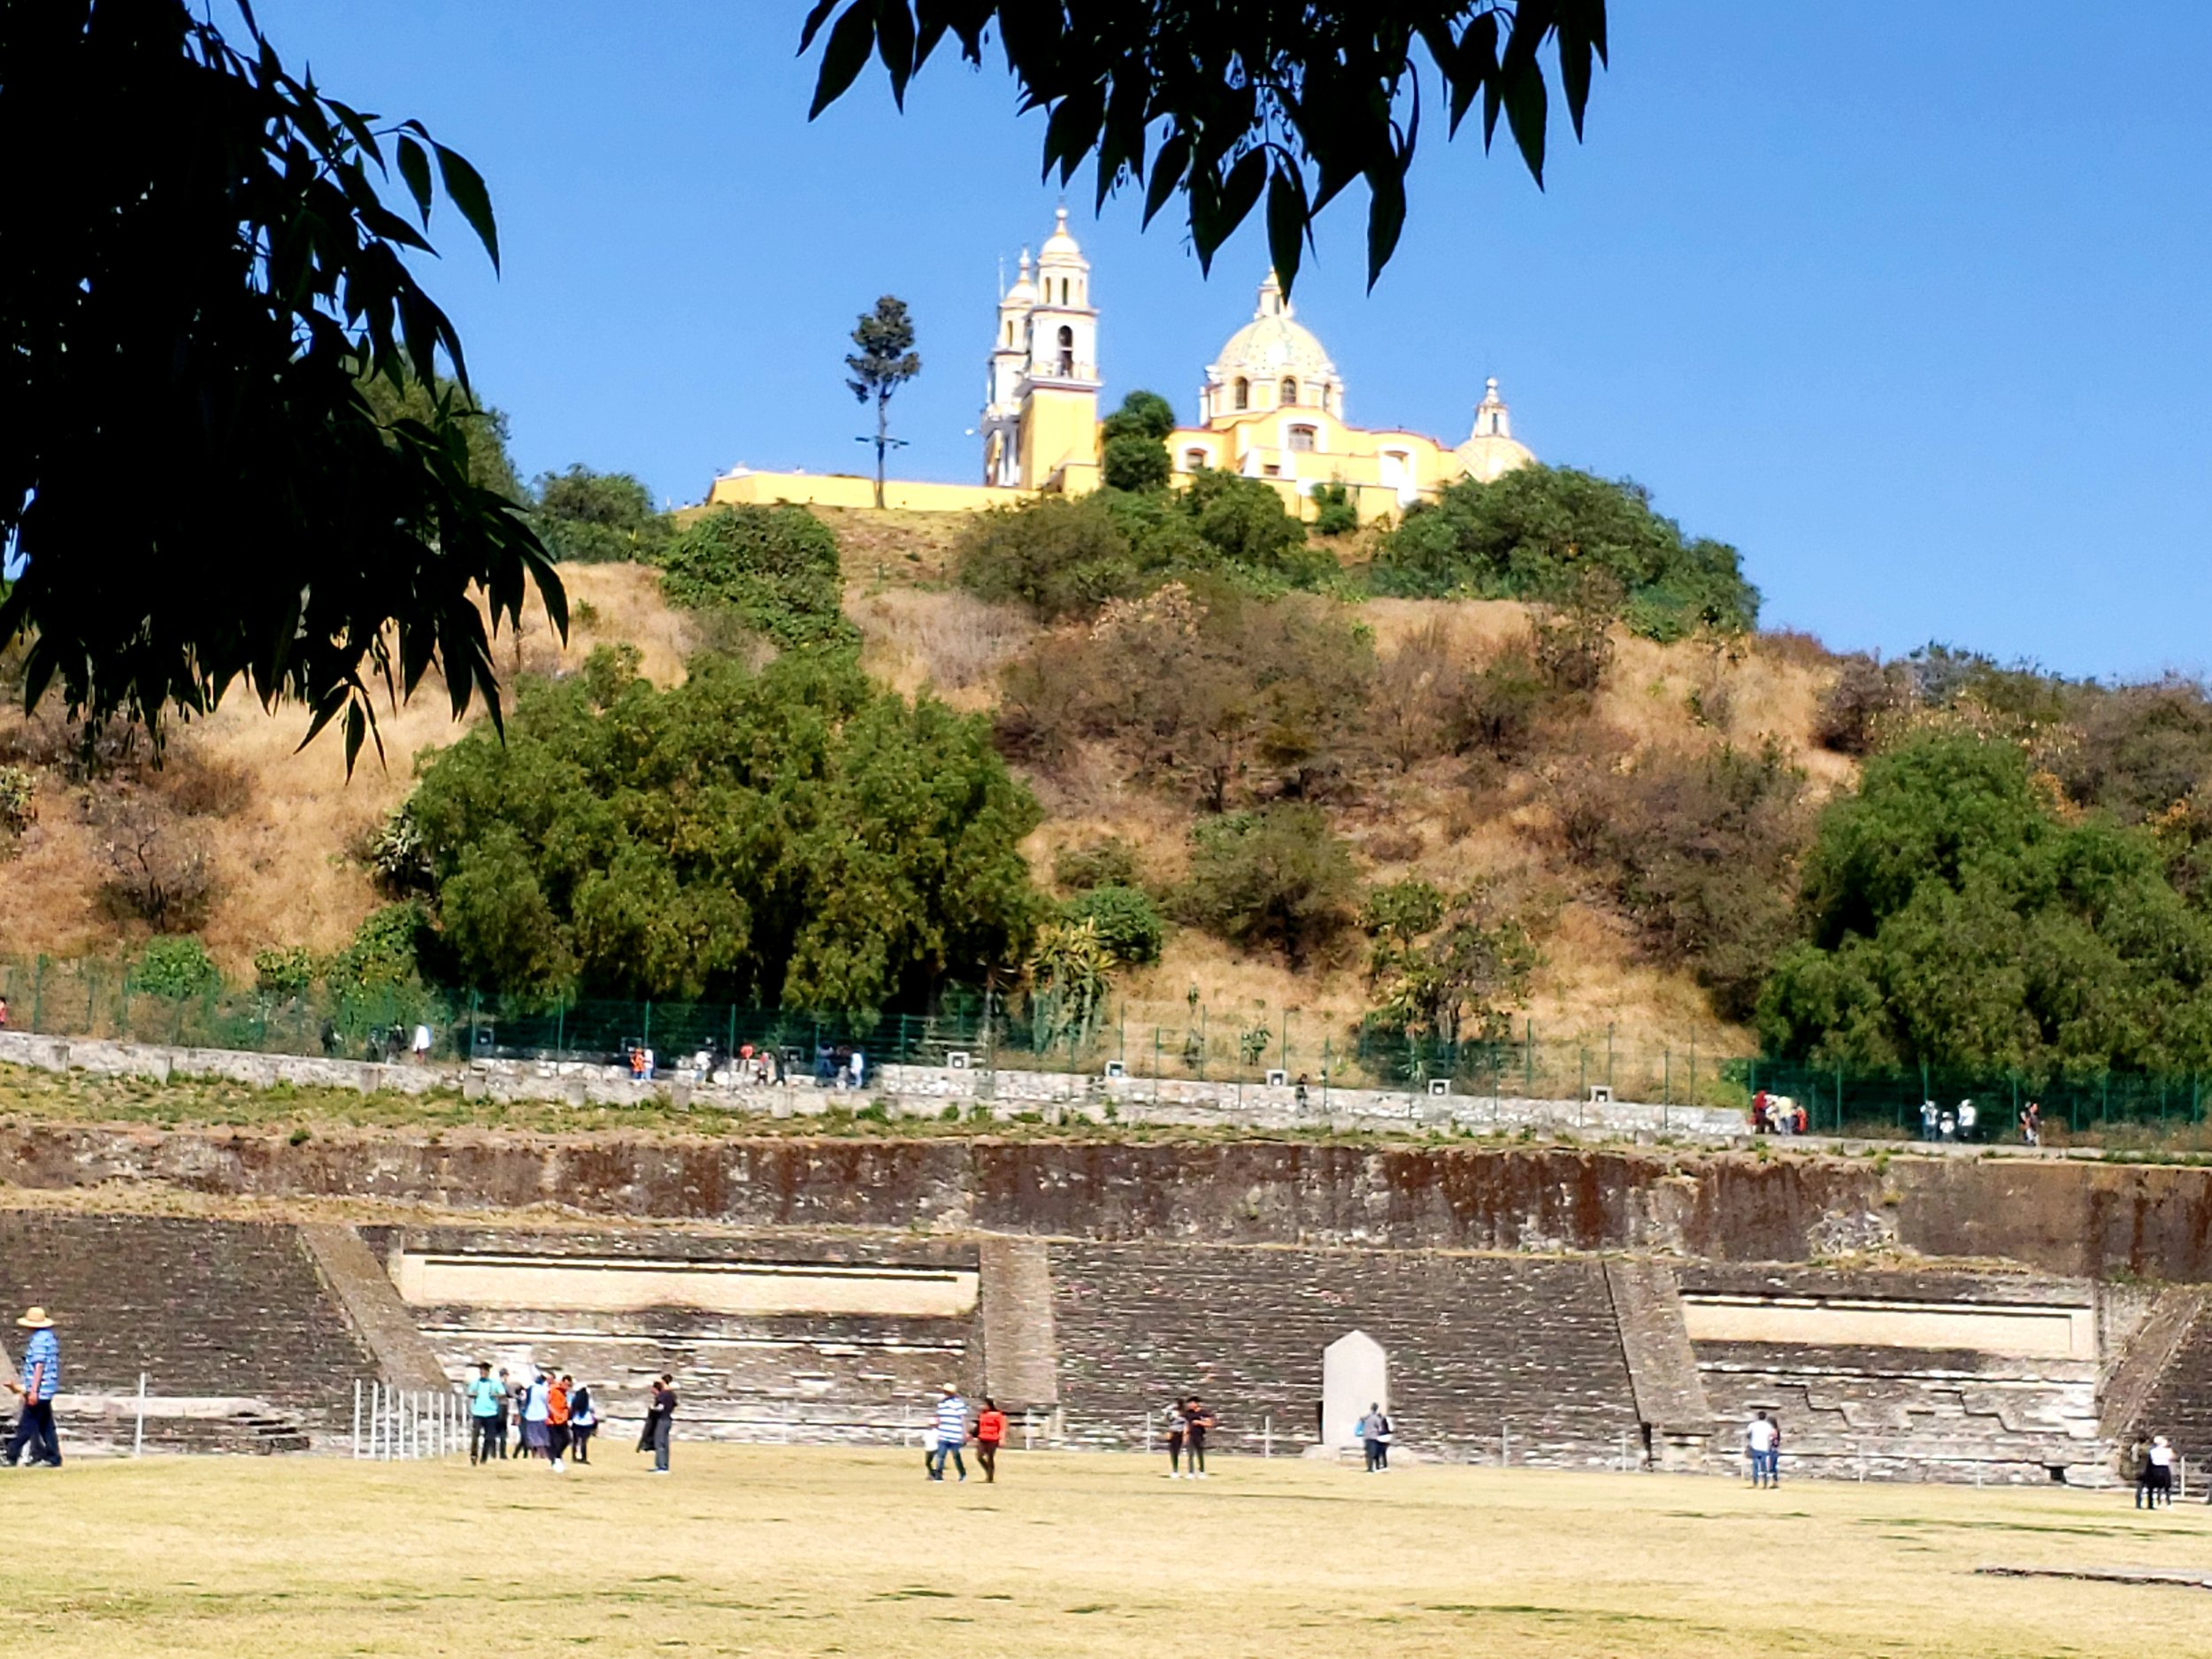 Church built on the top of the pyramid in Cholula